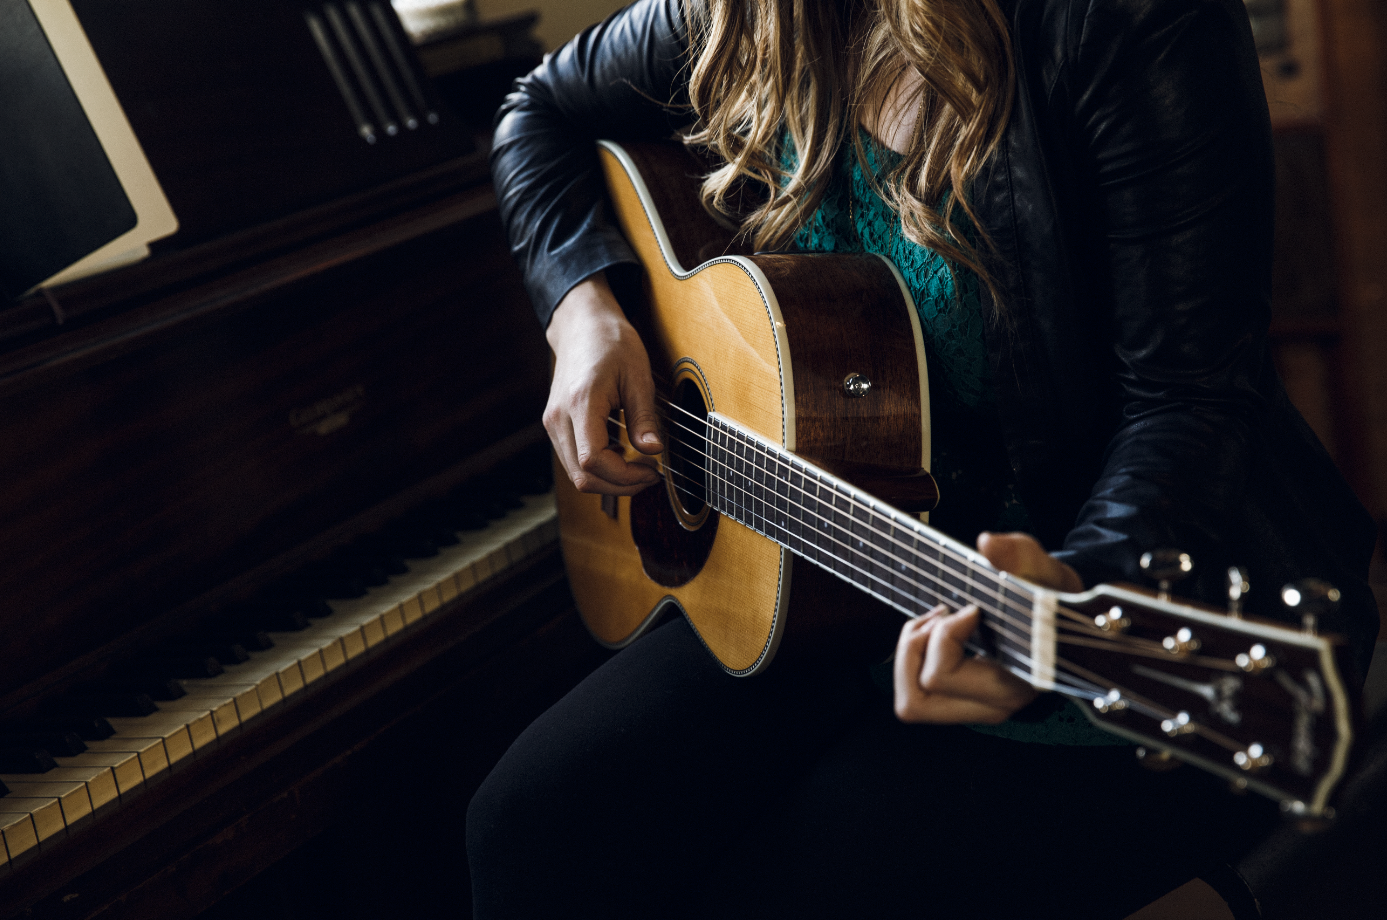 Picking up your first instrument might seem daunting at first, but it's the first step toward self-expression, confidence building and a lifetime of gratification. A Fender #guitar is the perfect tool to do just that—pursue your musical passion for the long haul. #learntoplay #learnguitar